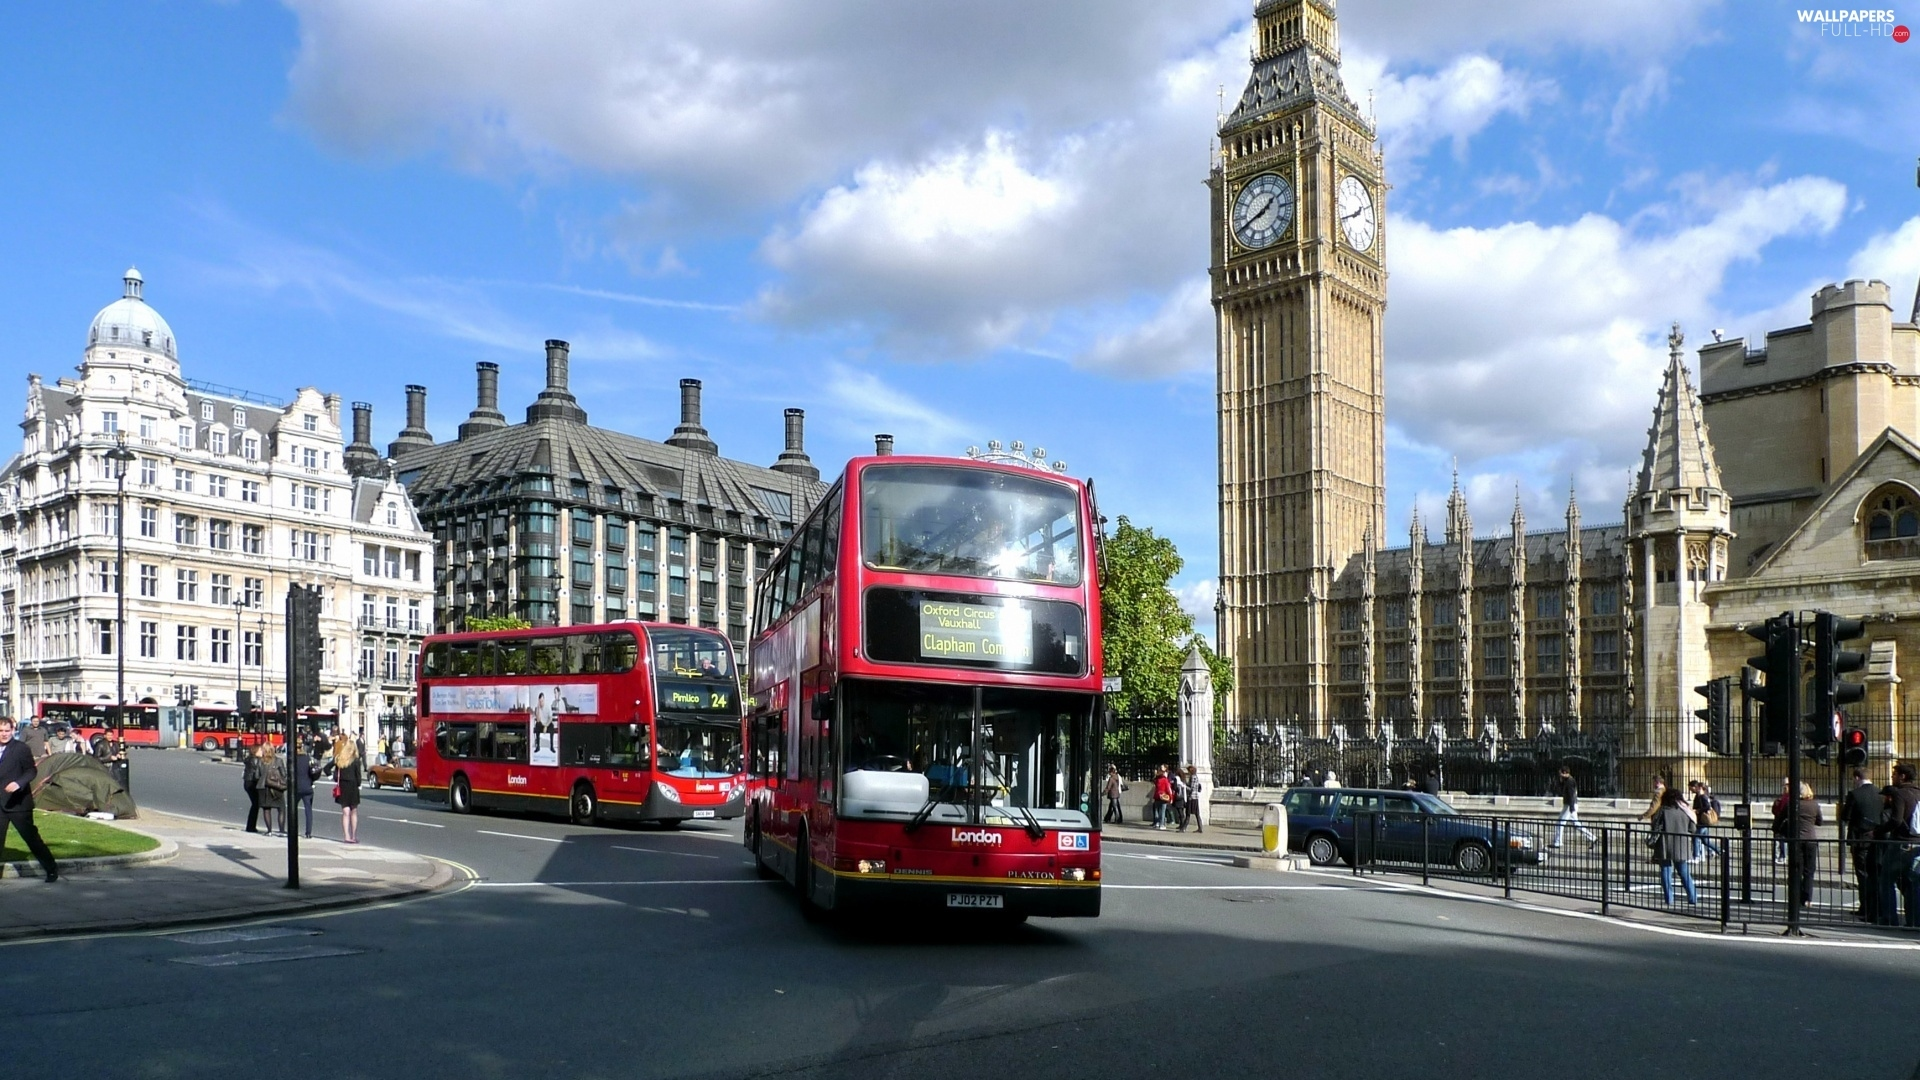 England London Street Buses Full Hd Wallpapers 1920x1080